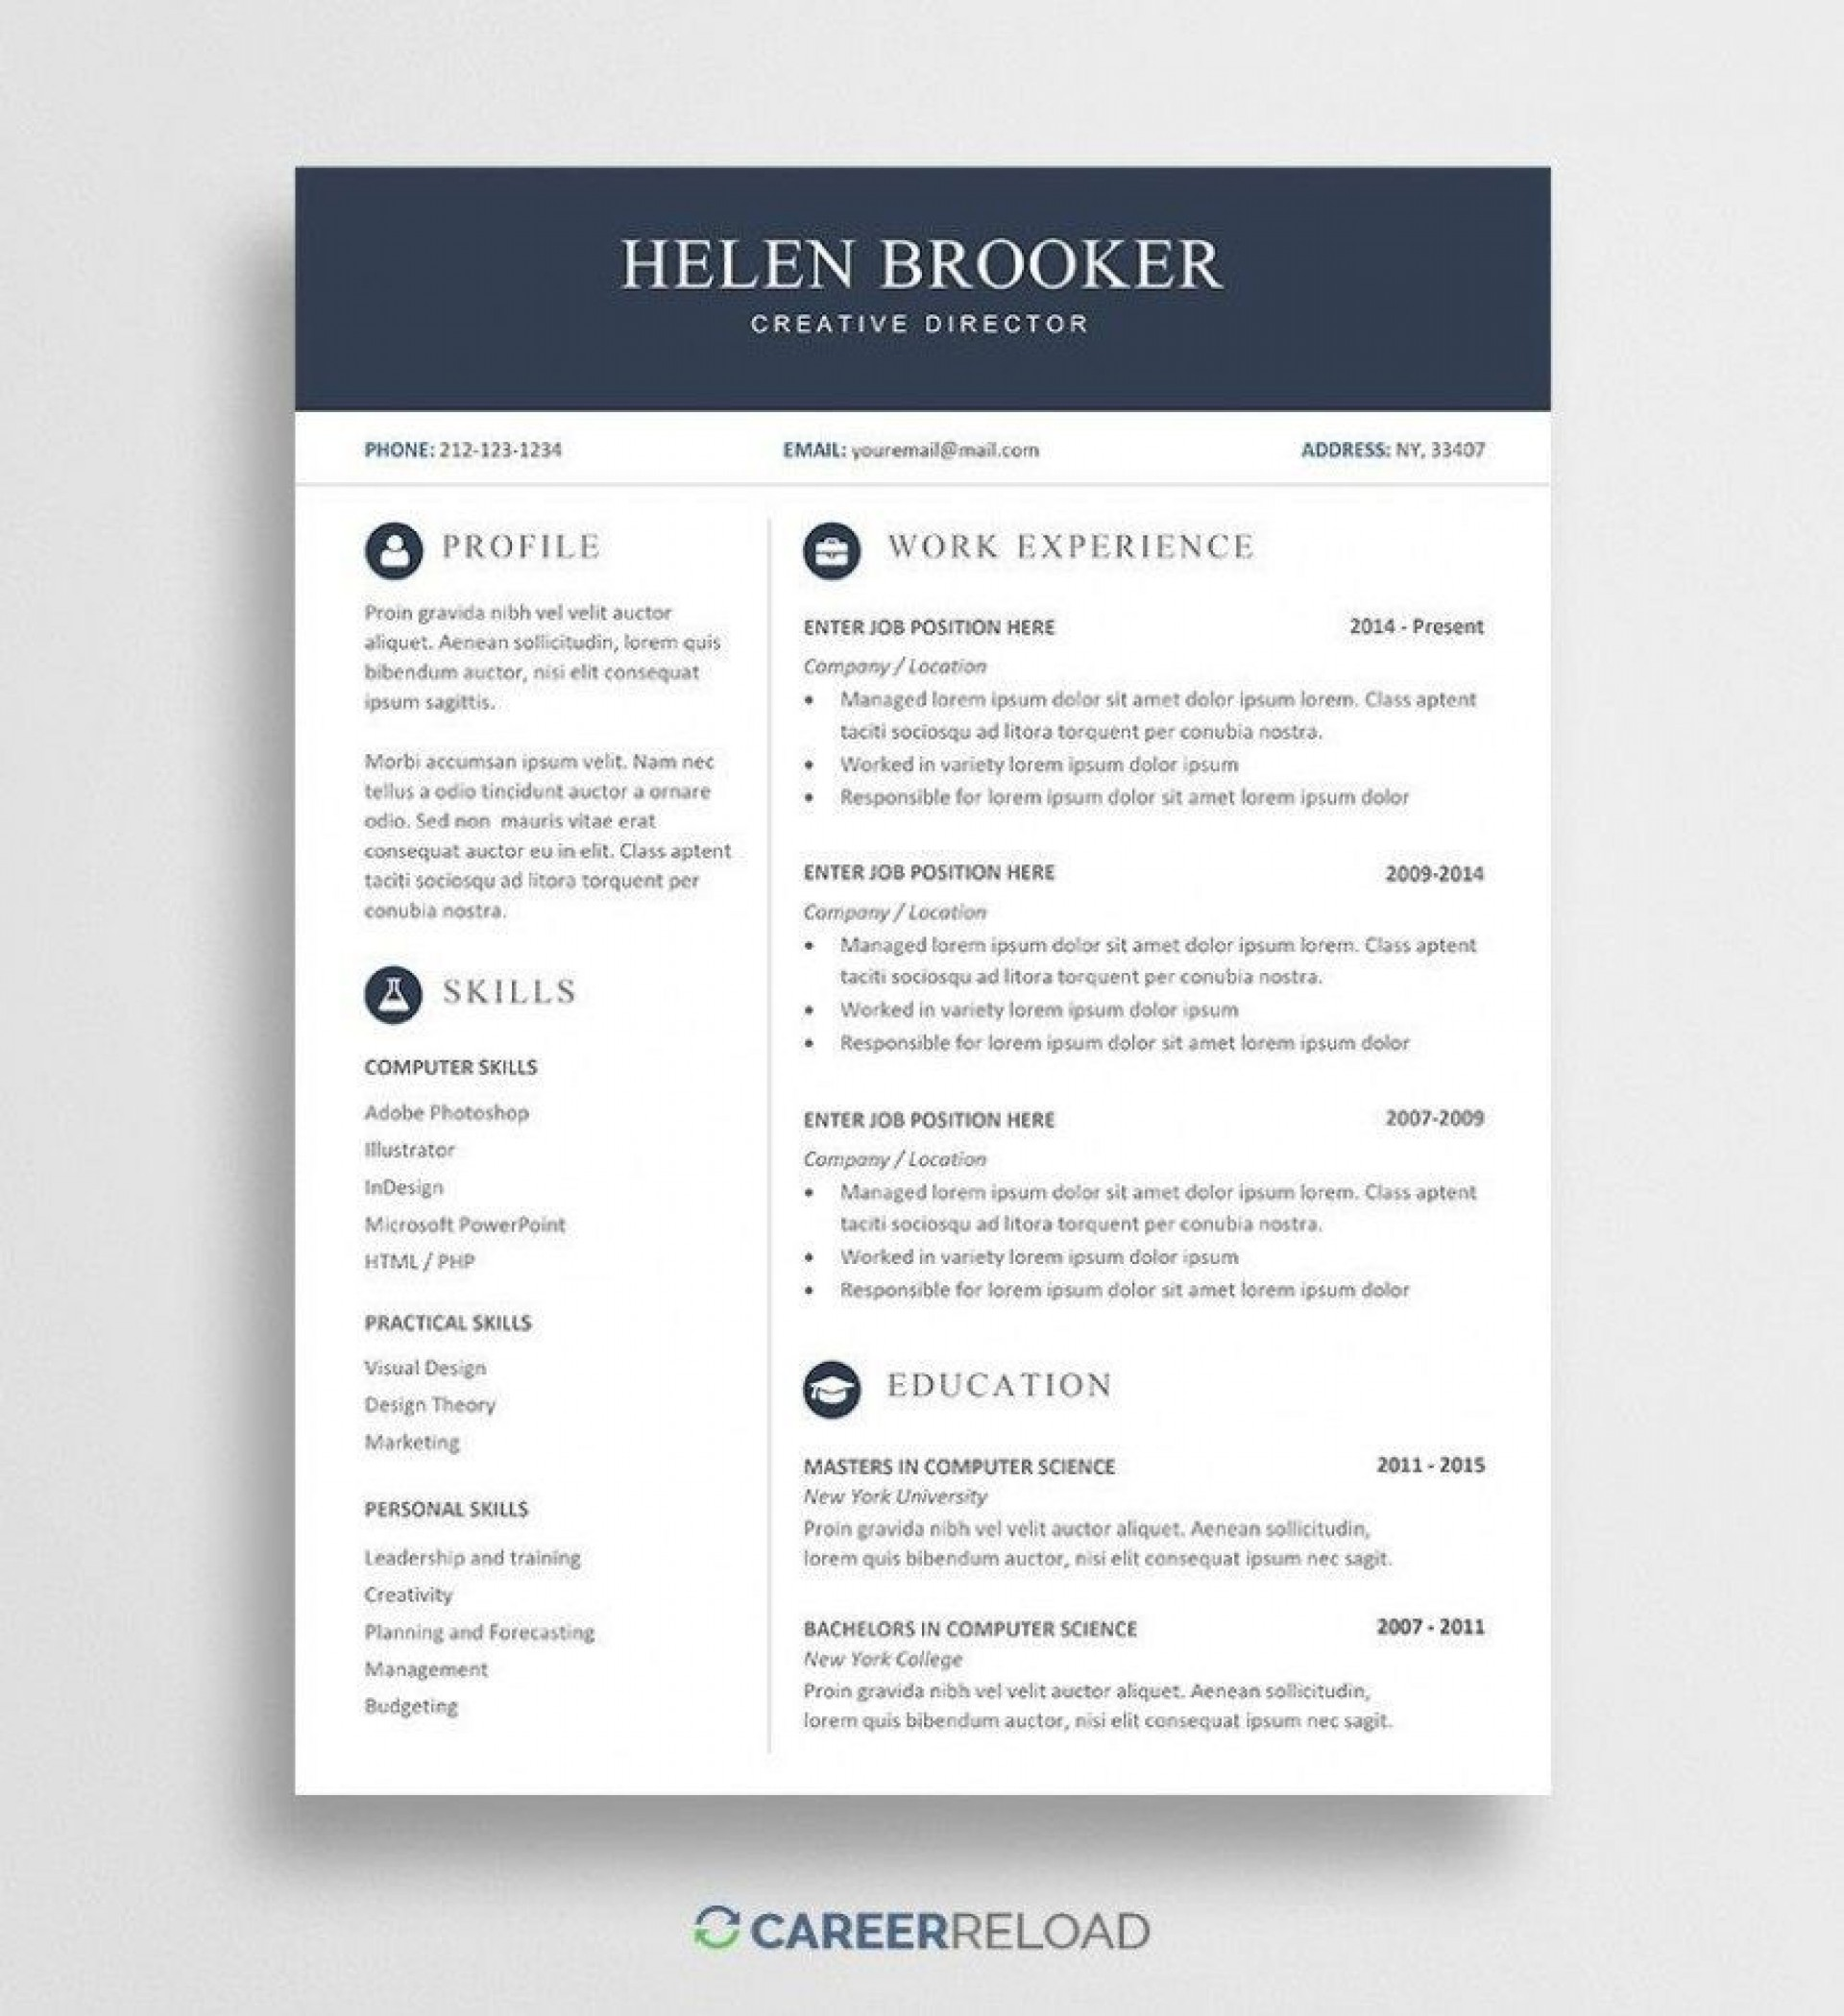 006 Wondrou Download Resume Template Free Microsoft Word High Definition  2010 Attractive M Simple For1920